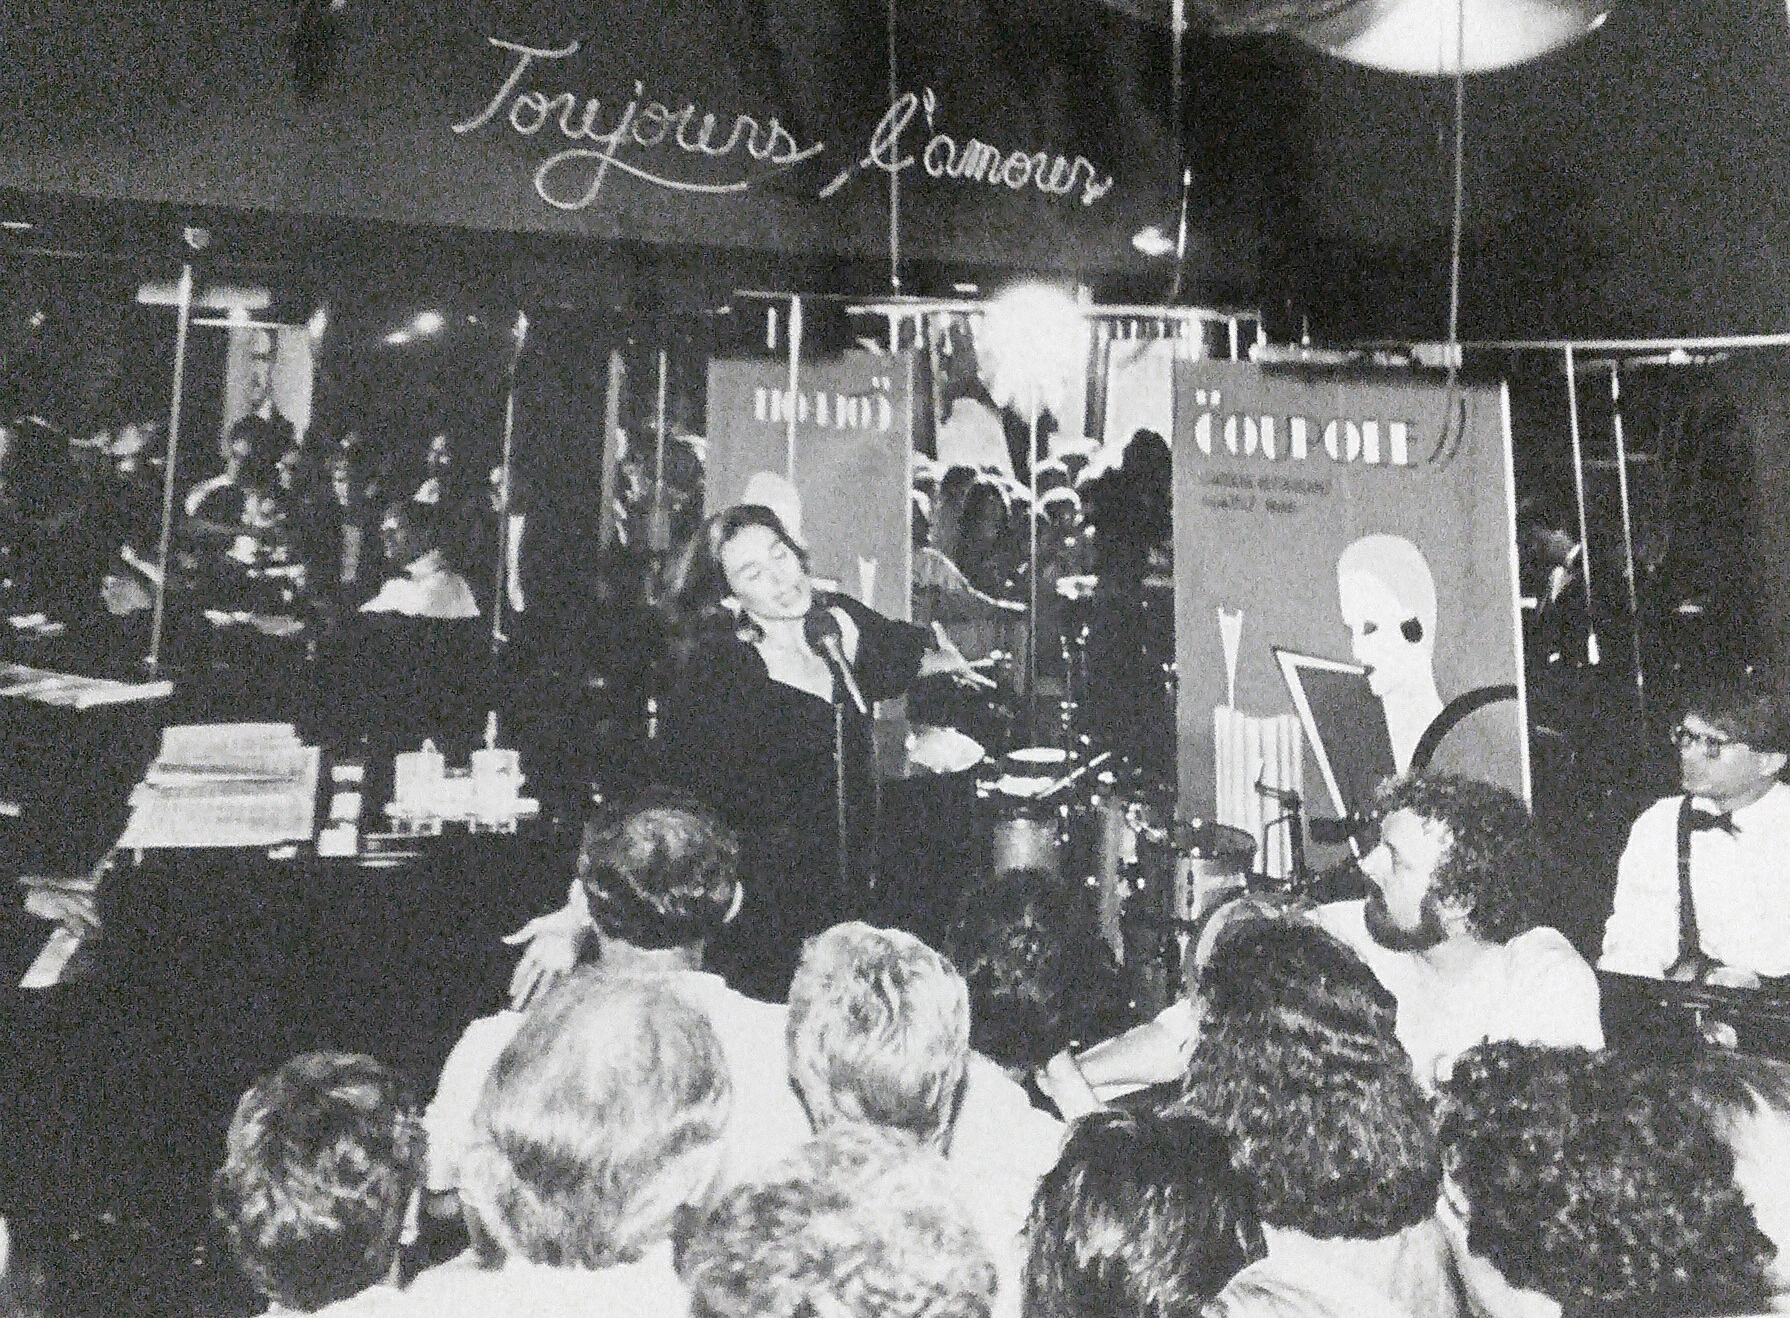 Many famous artists graced the stage of the Sardine Bar, including actress, singer and cabaret star Andrea Marcovicci (left). Because the club was so small, the stage took up little space and crowds could watch performers from just steps away. (Courtesy Debbie Silverman Krolik's private collection)